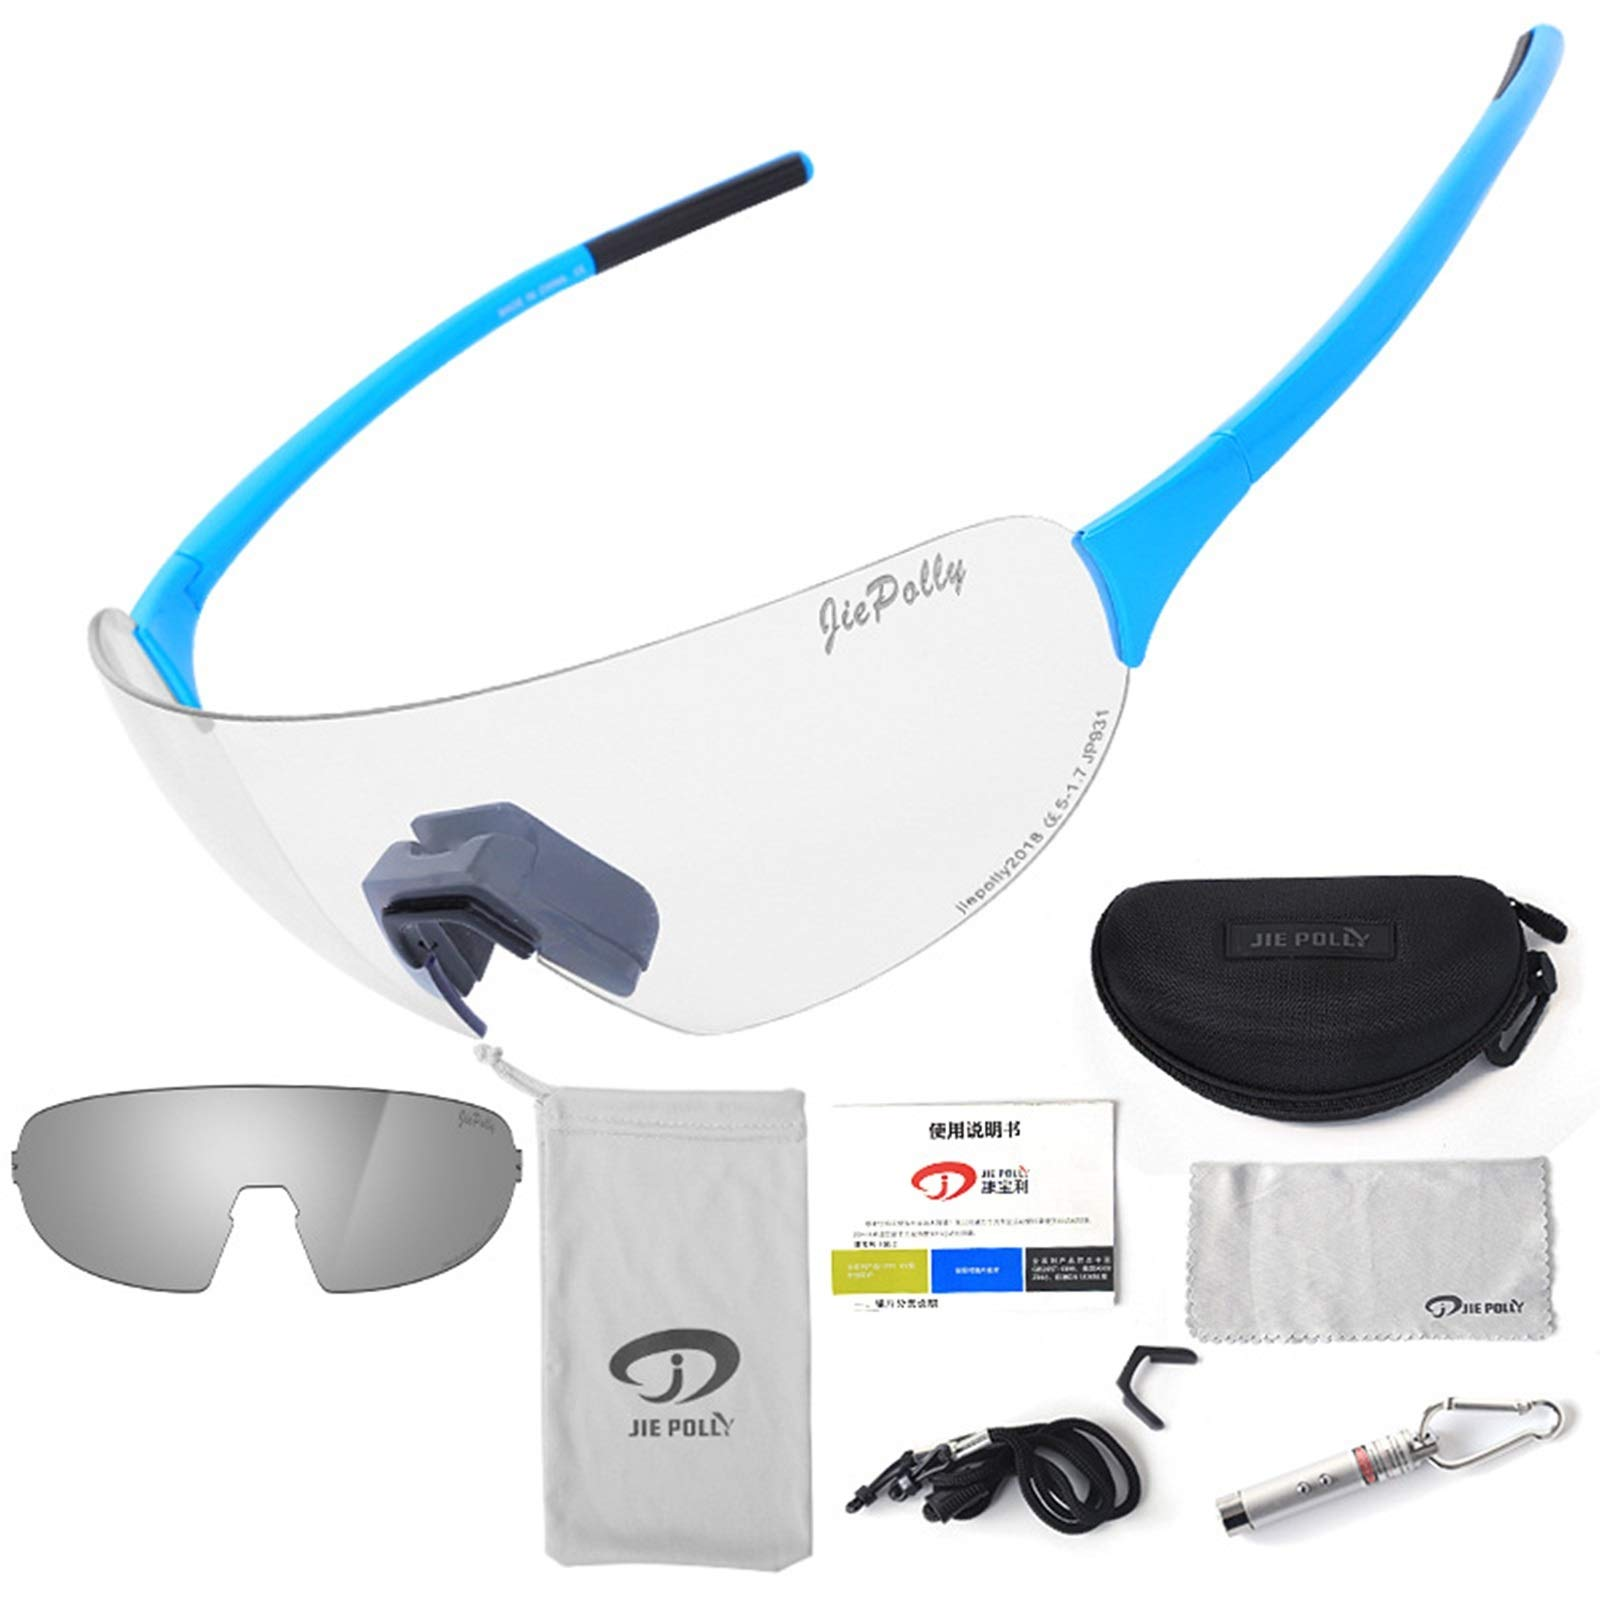 Adisaer Sports Sunglasses Youth Goggles Outdoor Sports Riding Color-Changing Glasses Men and Women Running Fishing Bicycle Windproof Polarized Glasses Blue Upgrade 1 for Adults